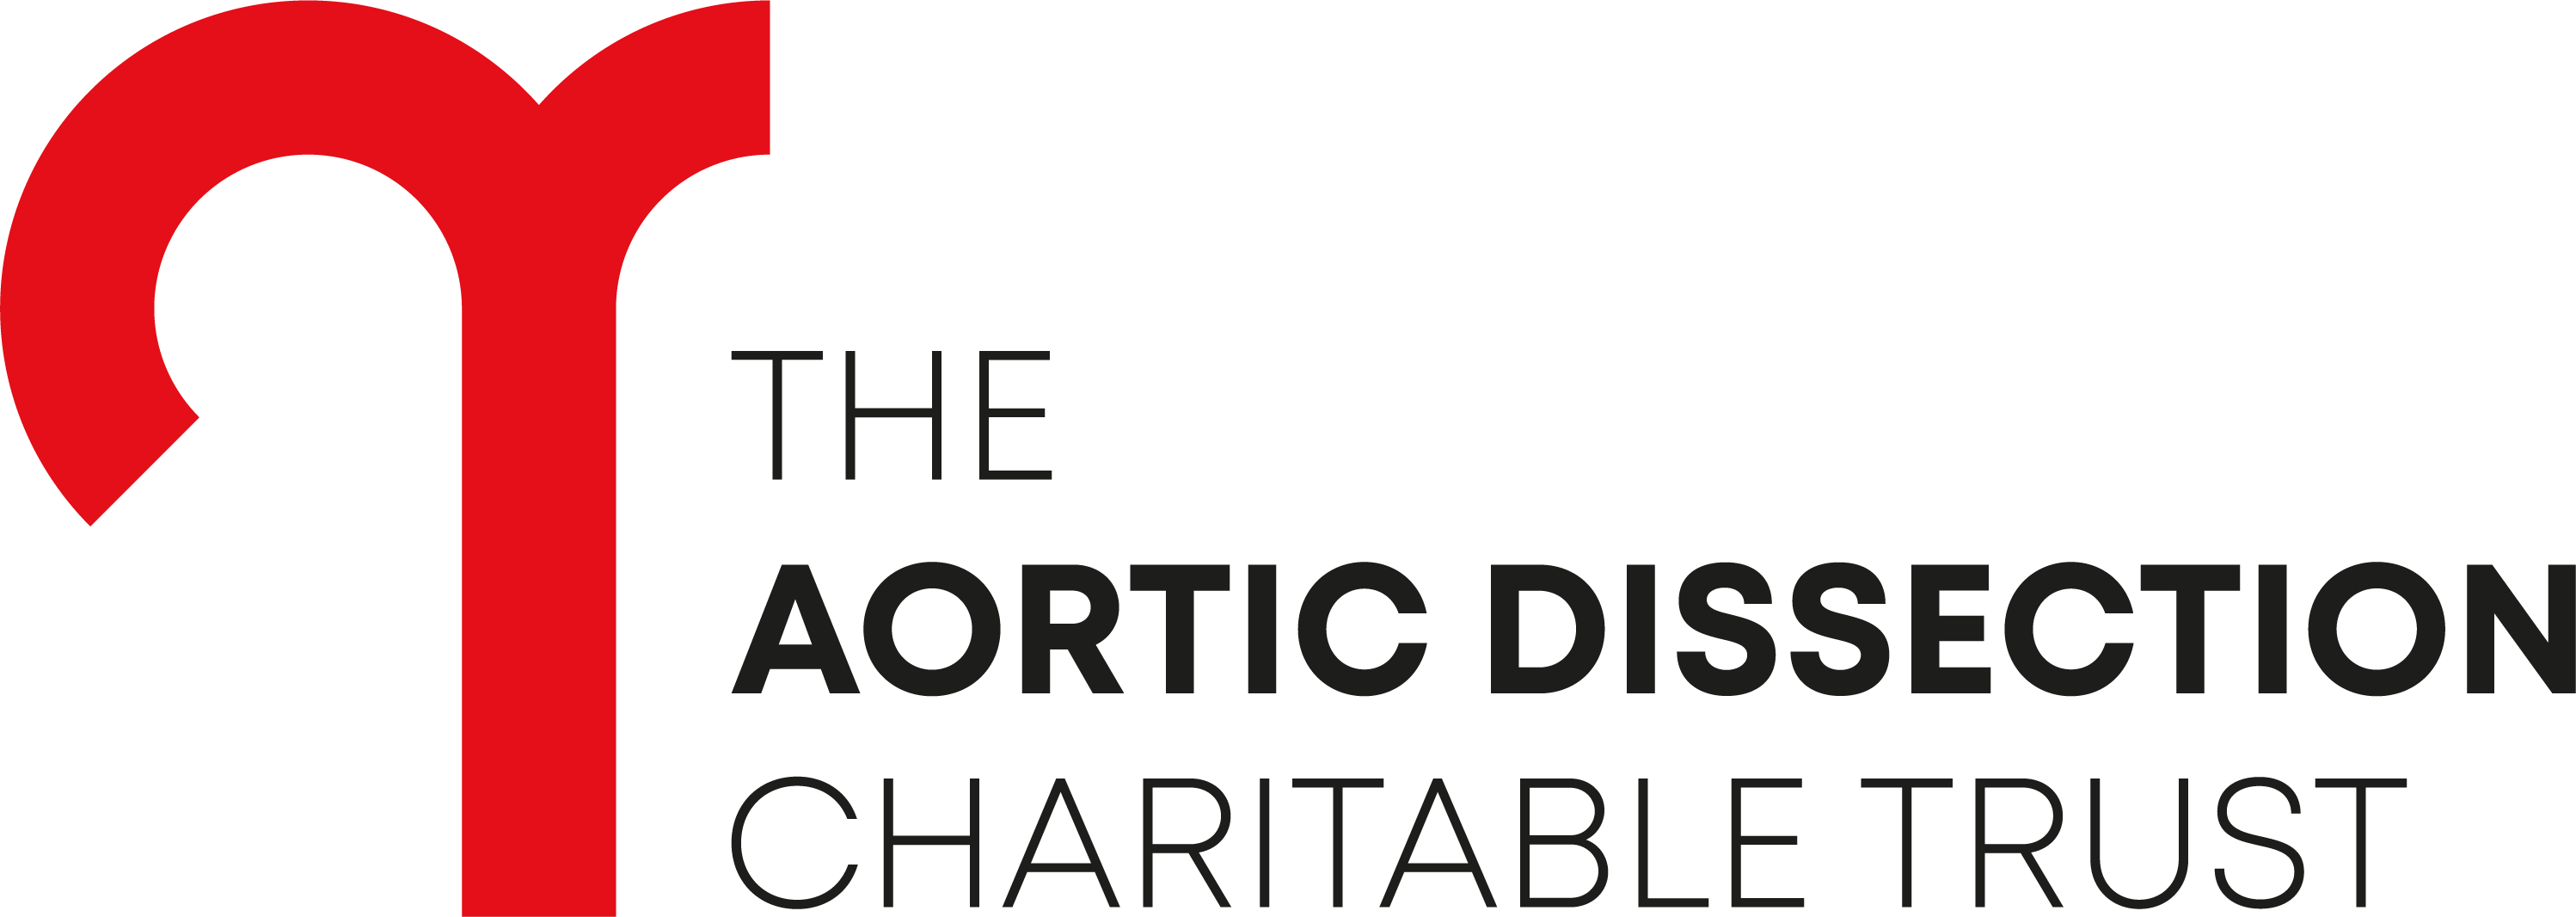 The Aortic Dissection Charitable Trust